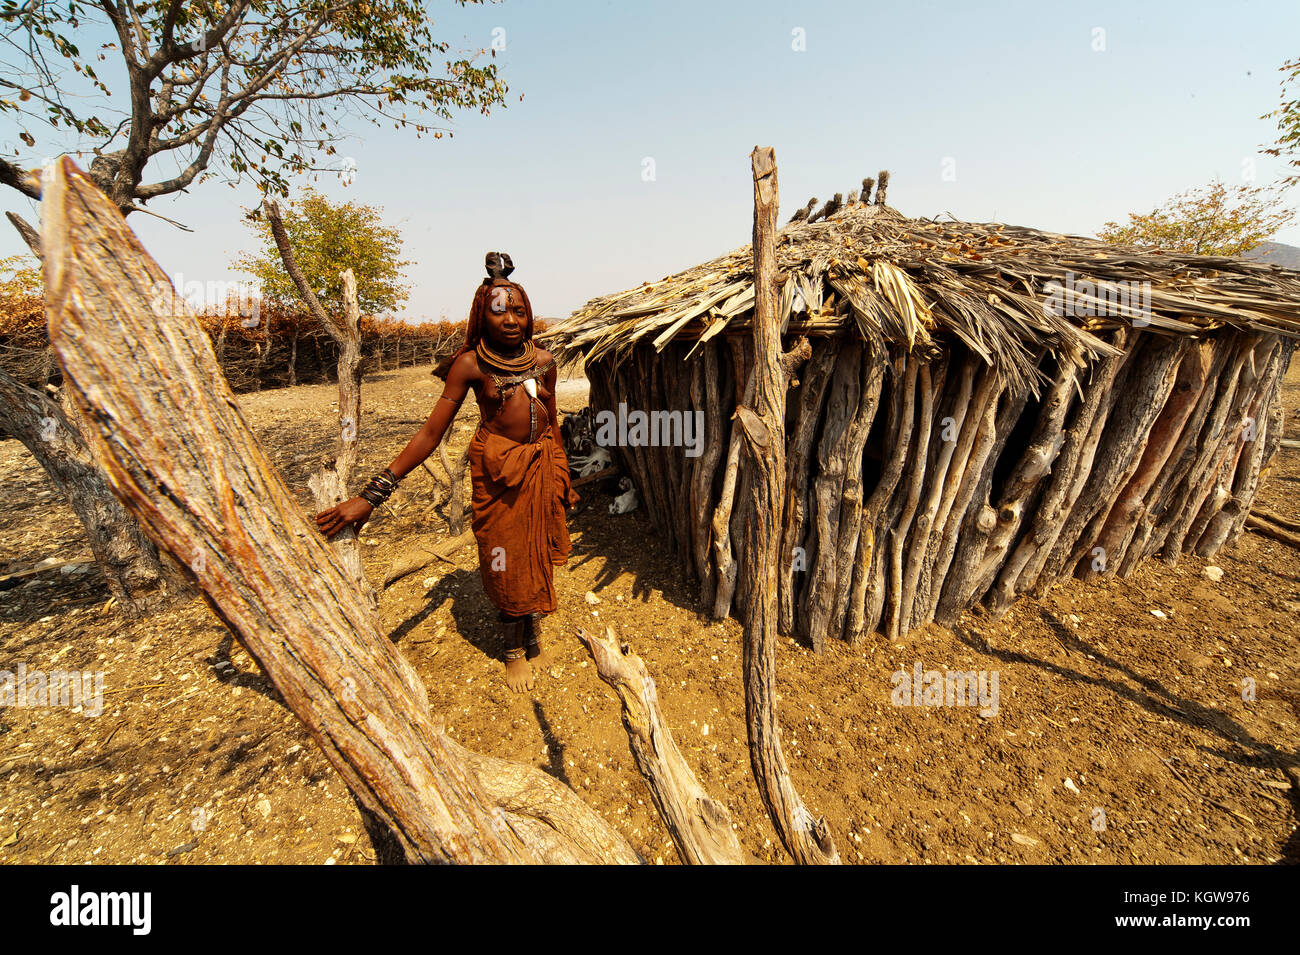 Himba woman in his village near Epupa Falls. Himbas also lived also in south Angola, where they are called hereros. - Stock Image